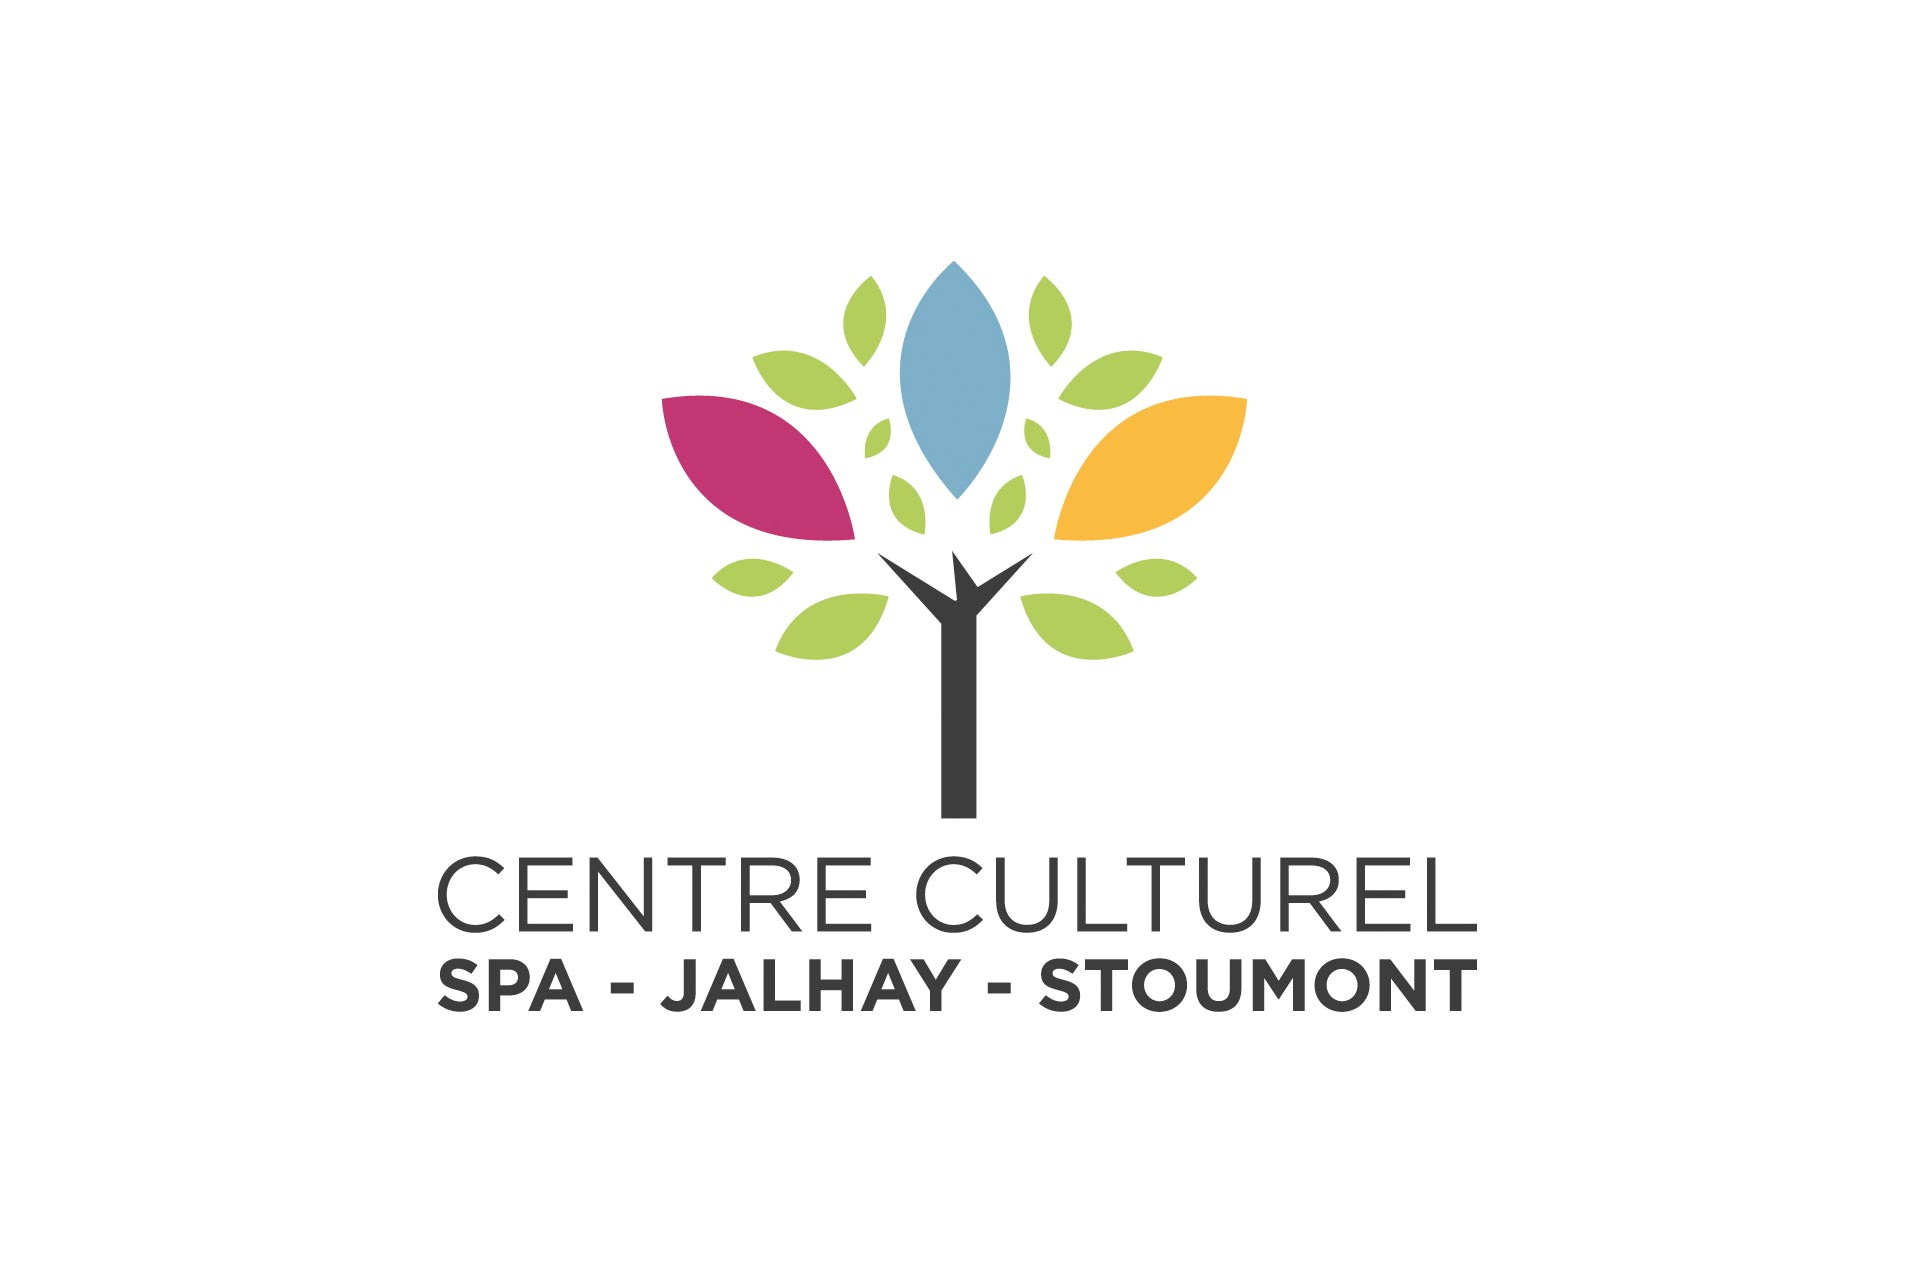 logo-culture-spa-jalhay-stoumont